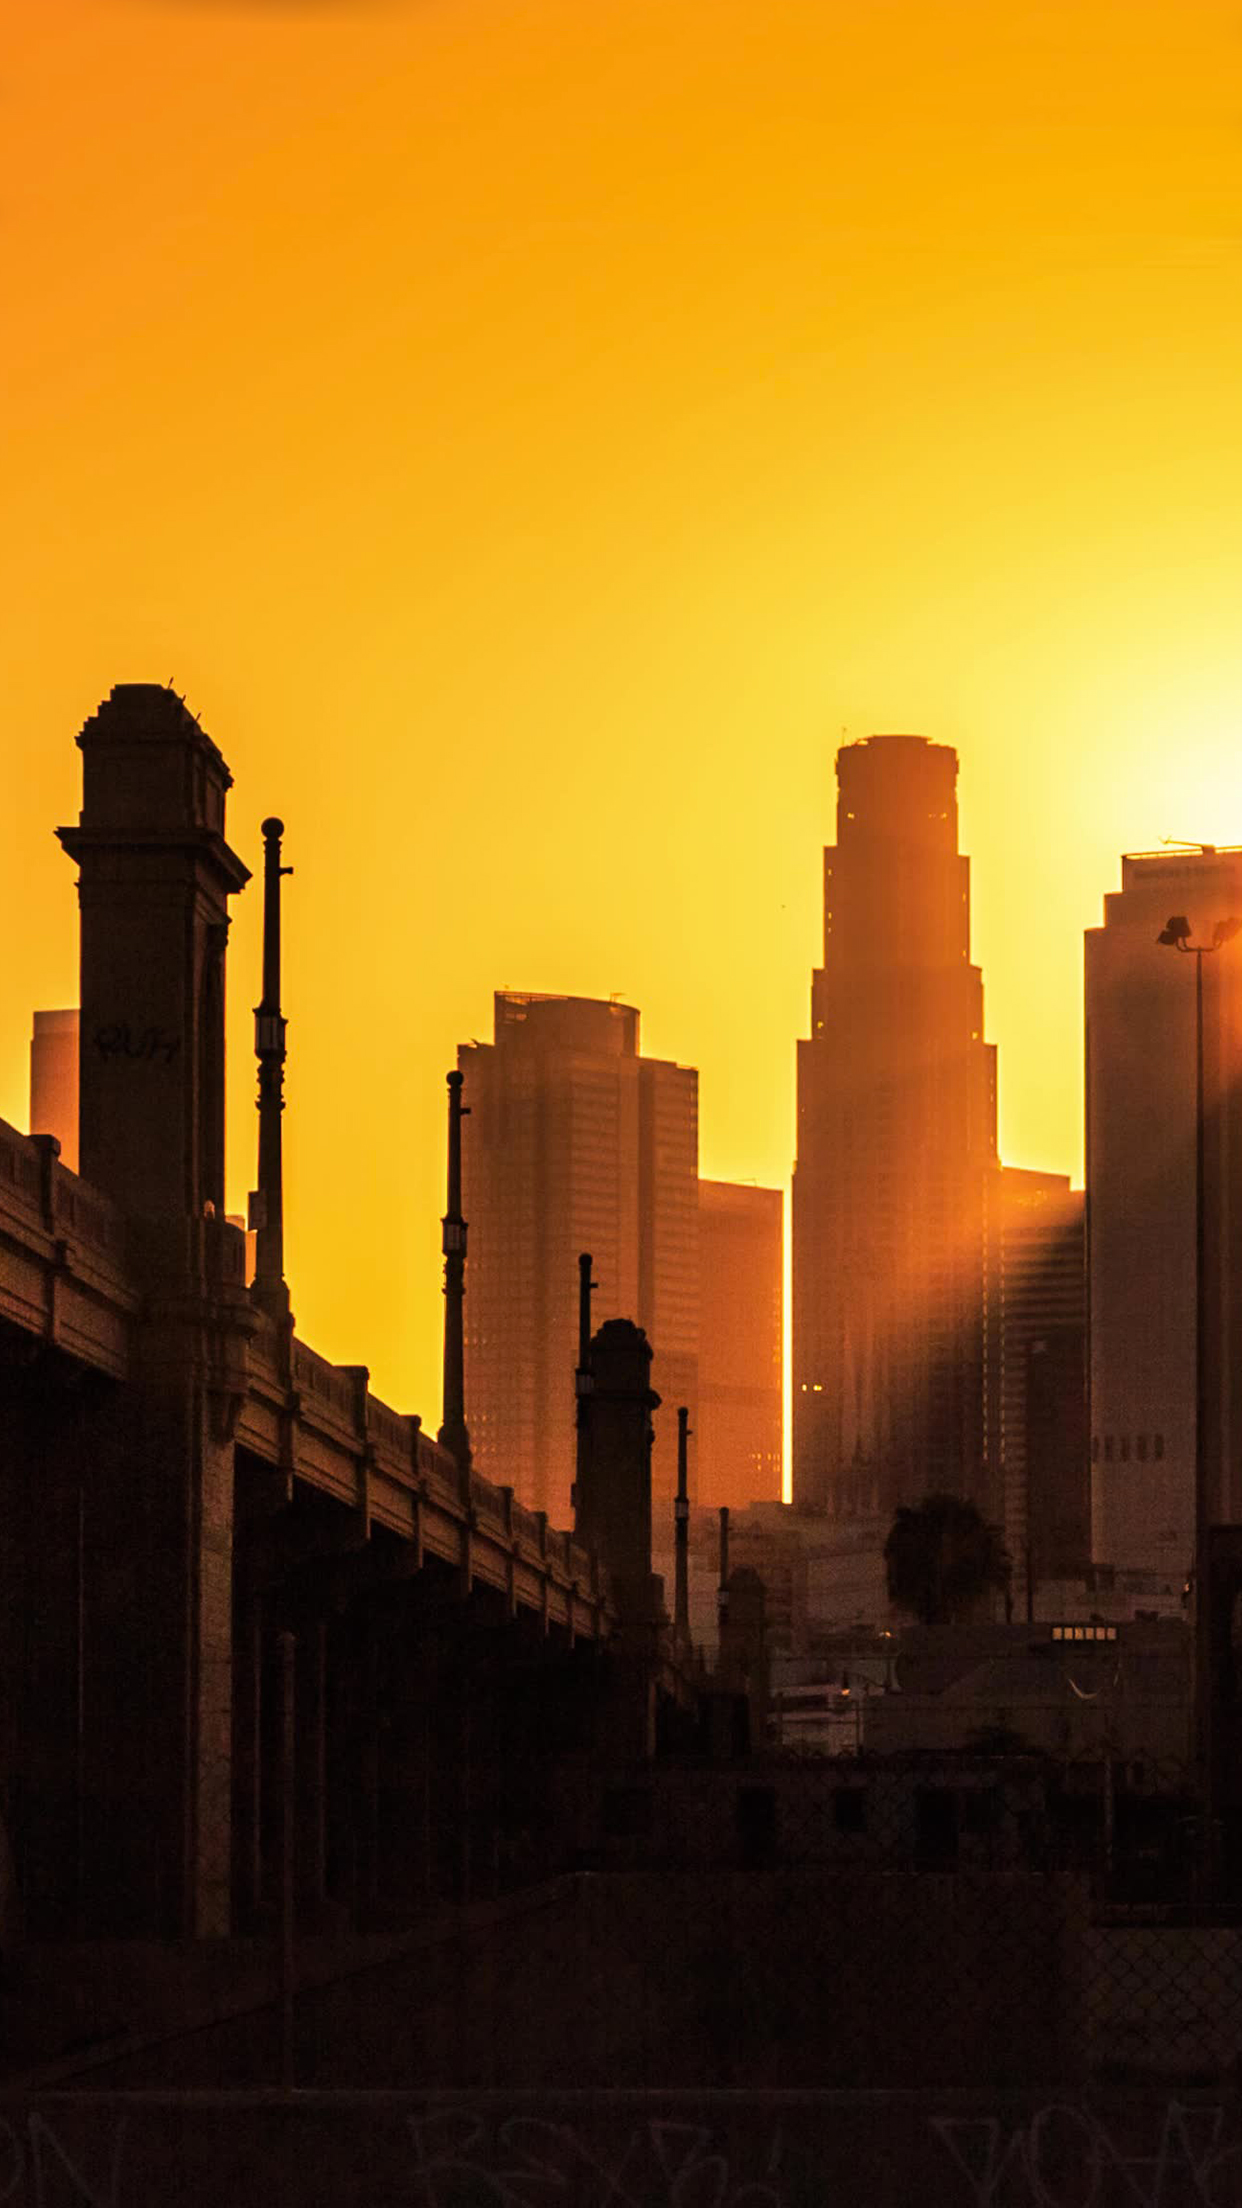 wallpaper hd iphone los angeles city sunset free download